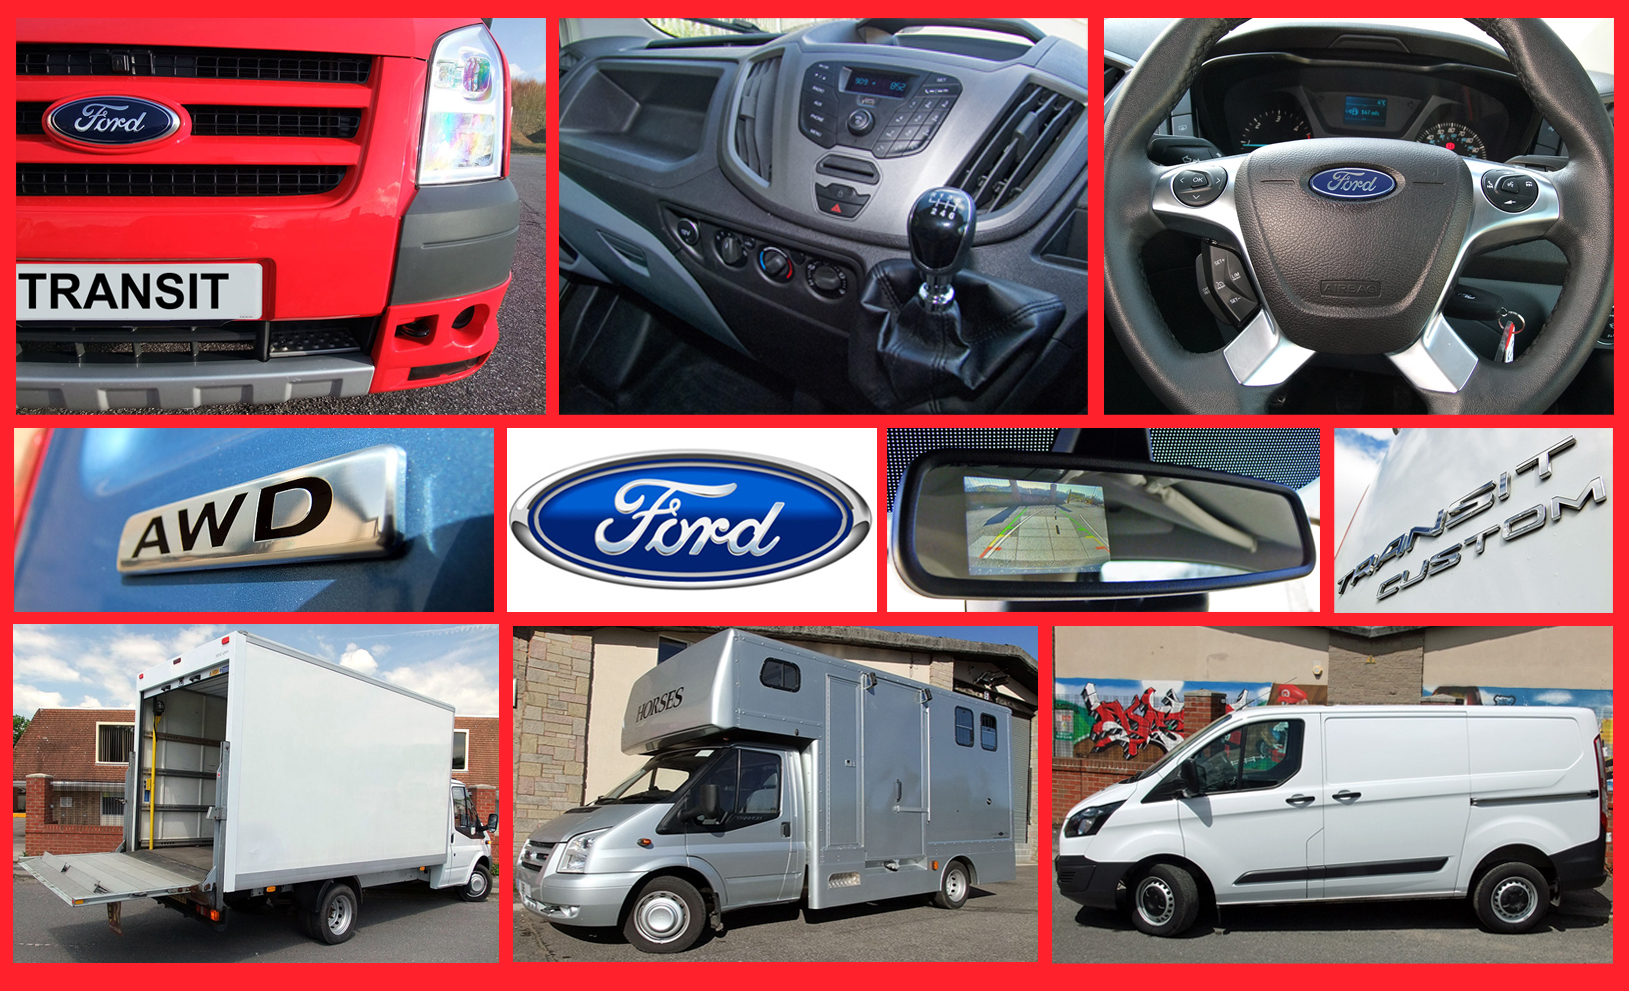 Ford Transit Van Hire Derbyshire East Midlands